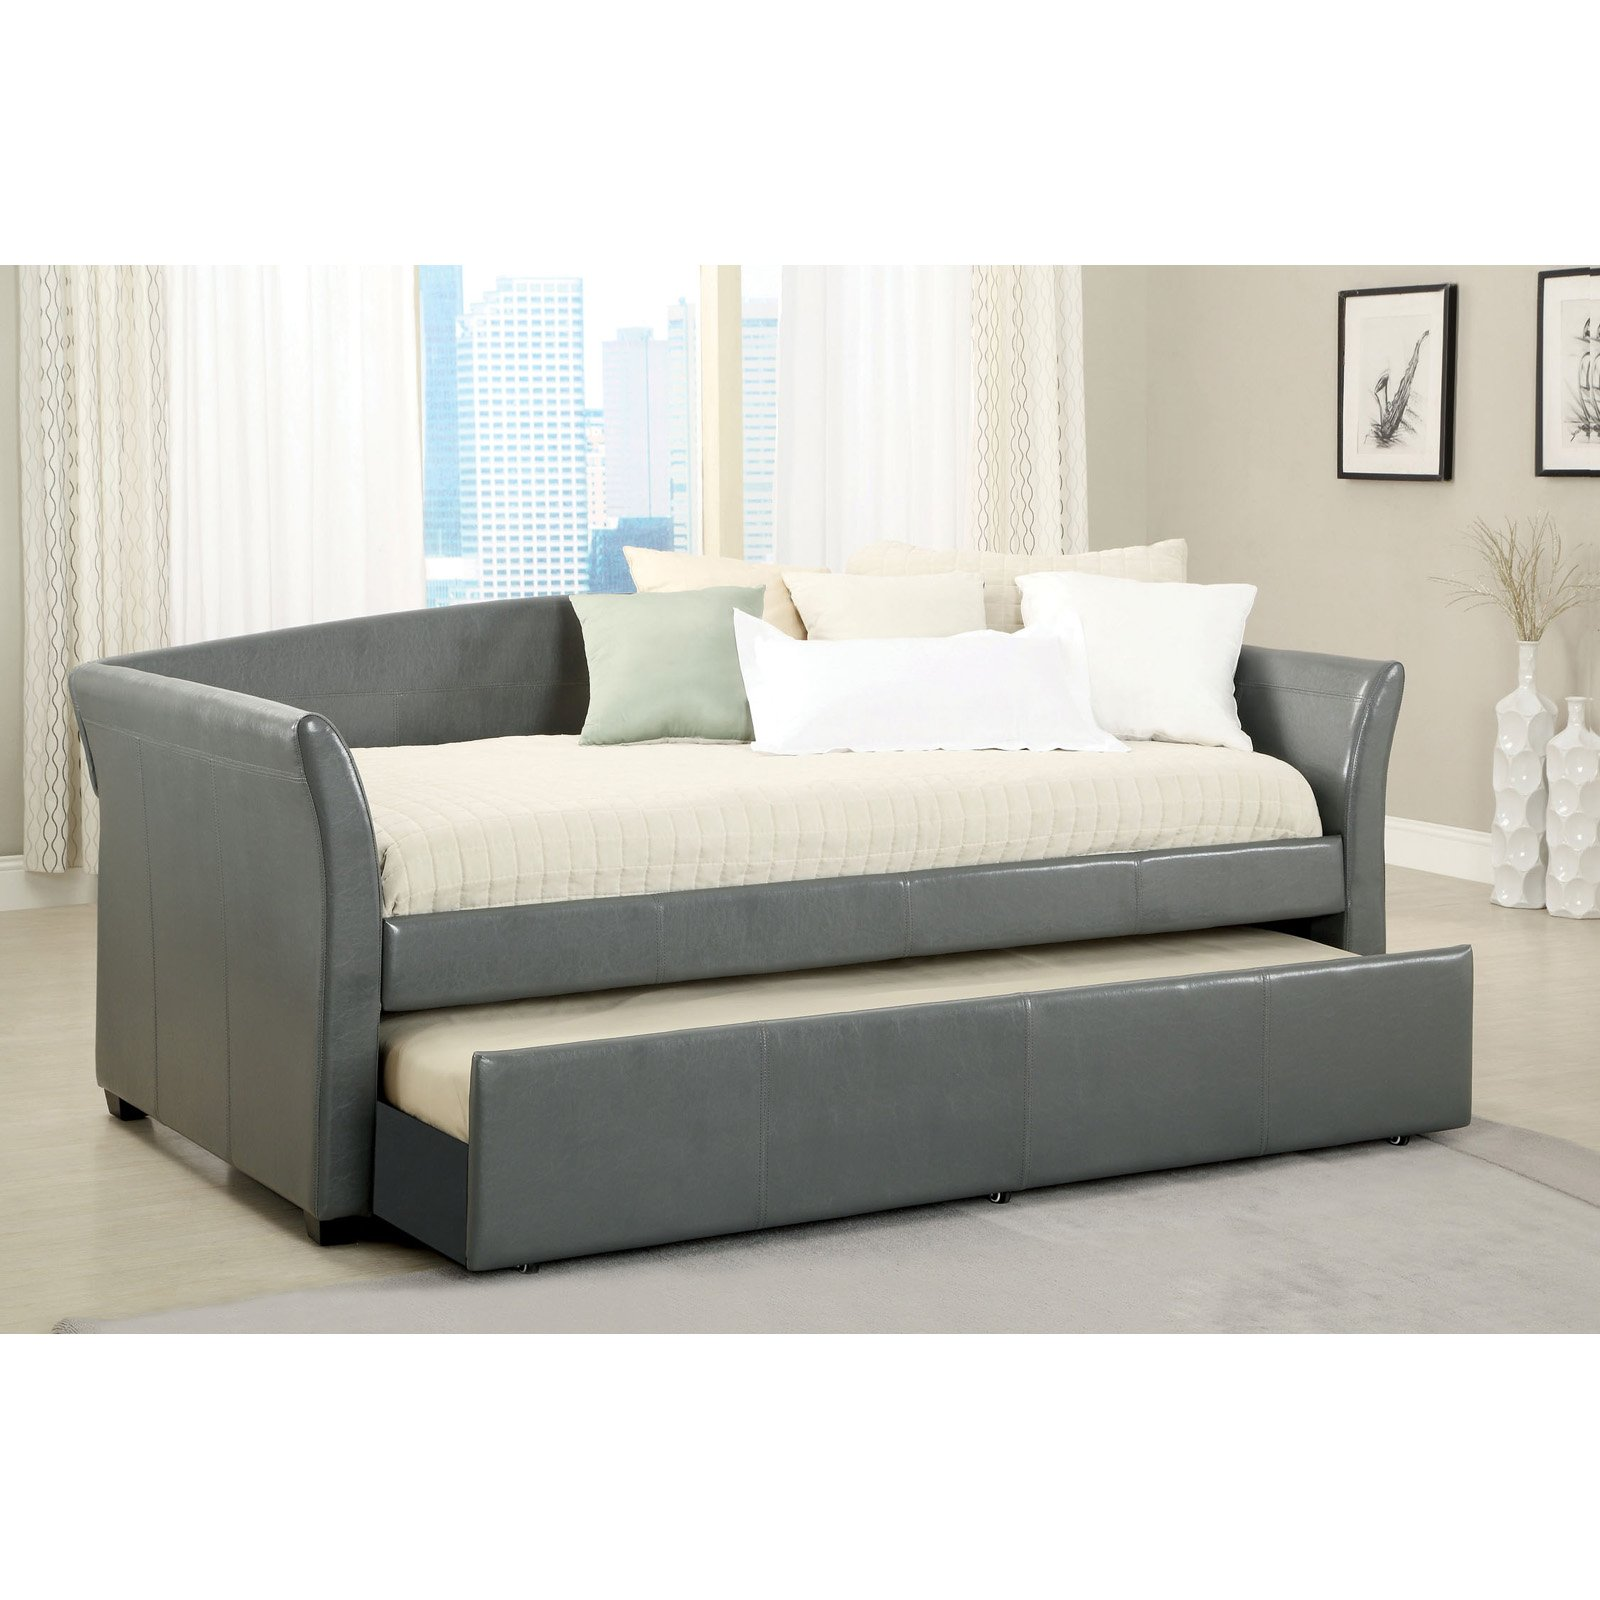 Daybed Trundle IKEA With A Cluster Of Accent Pillows